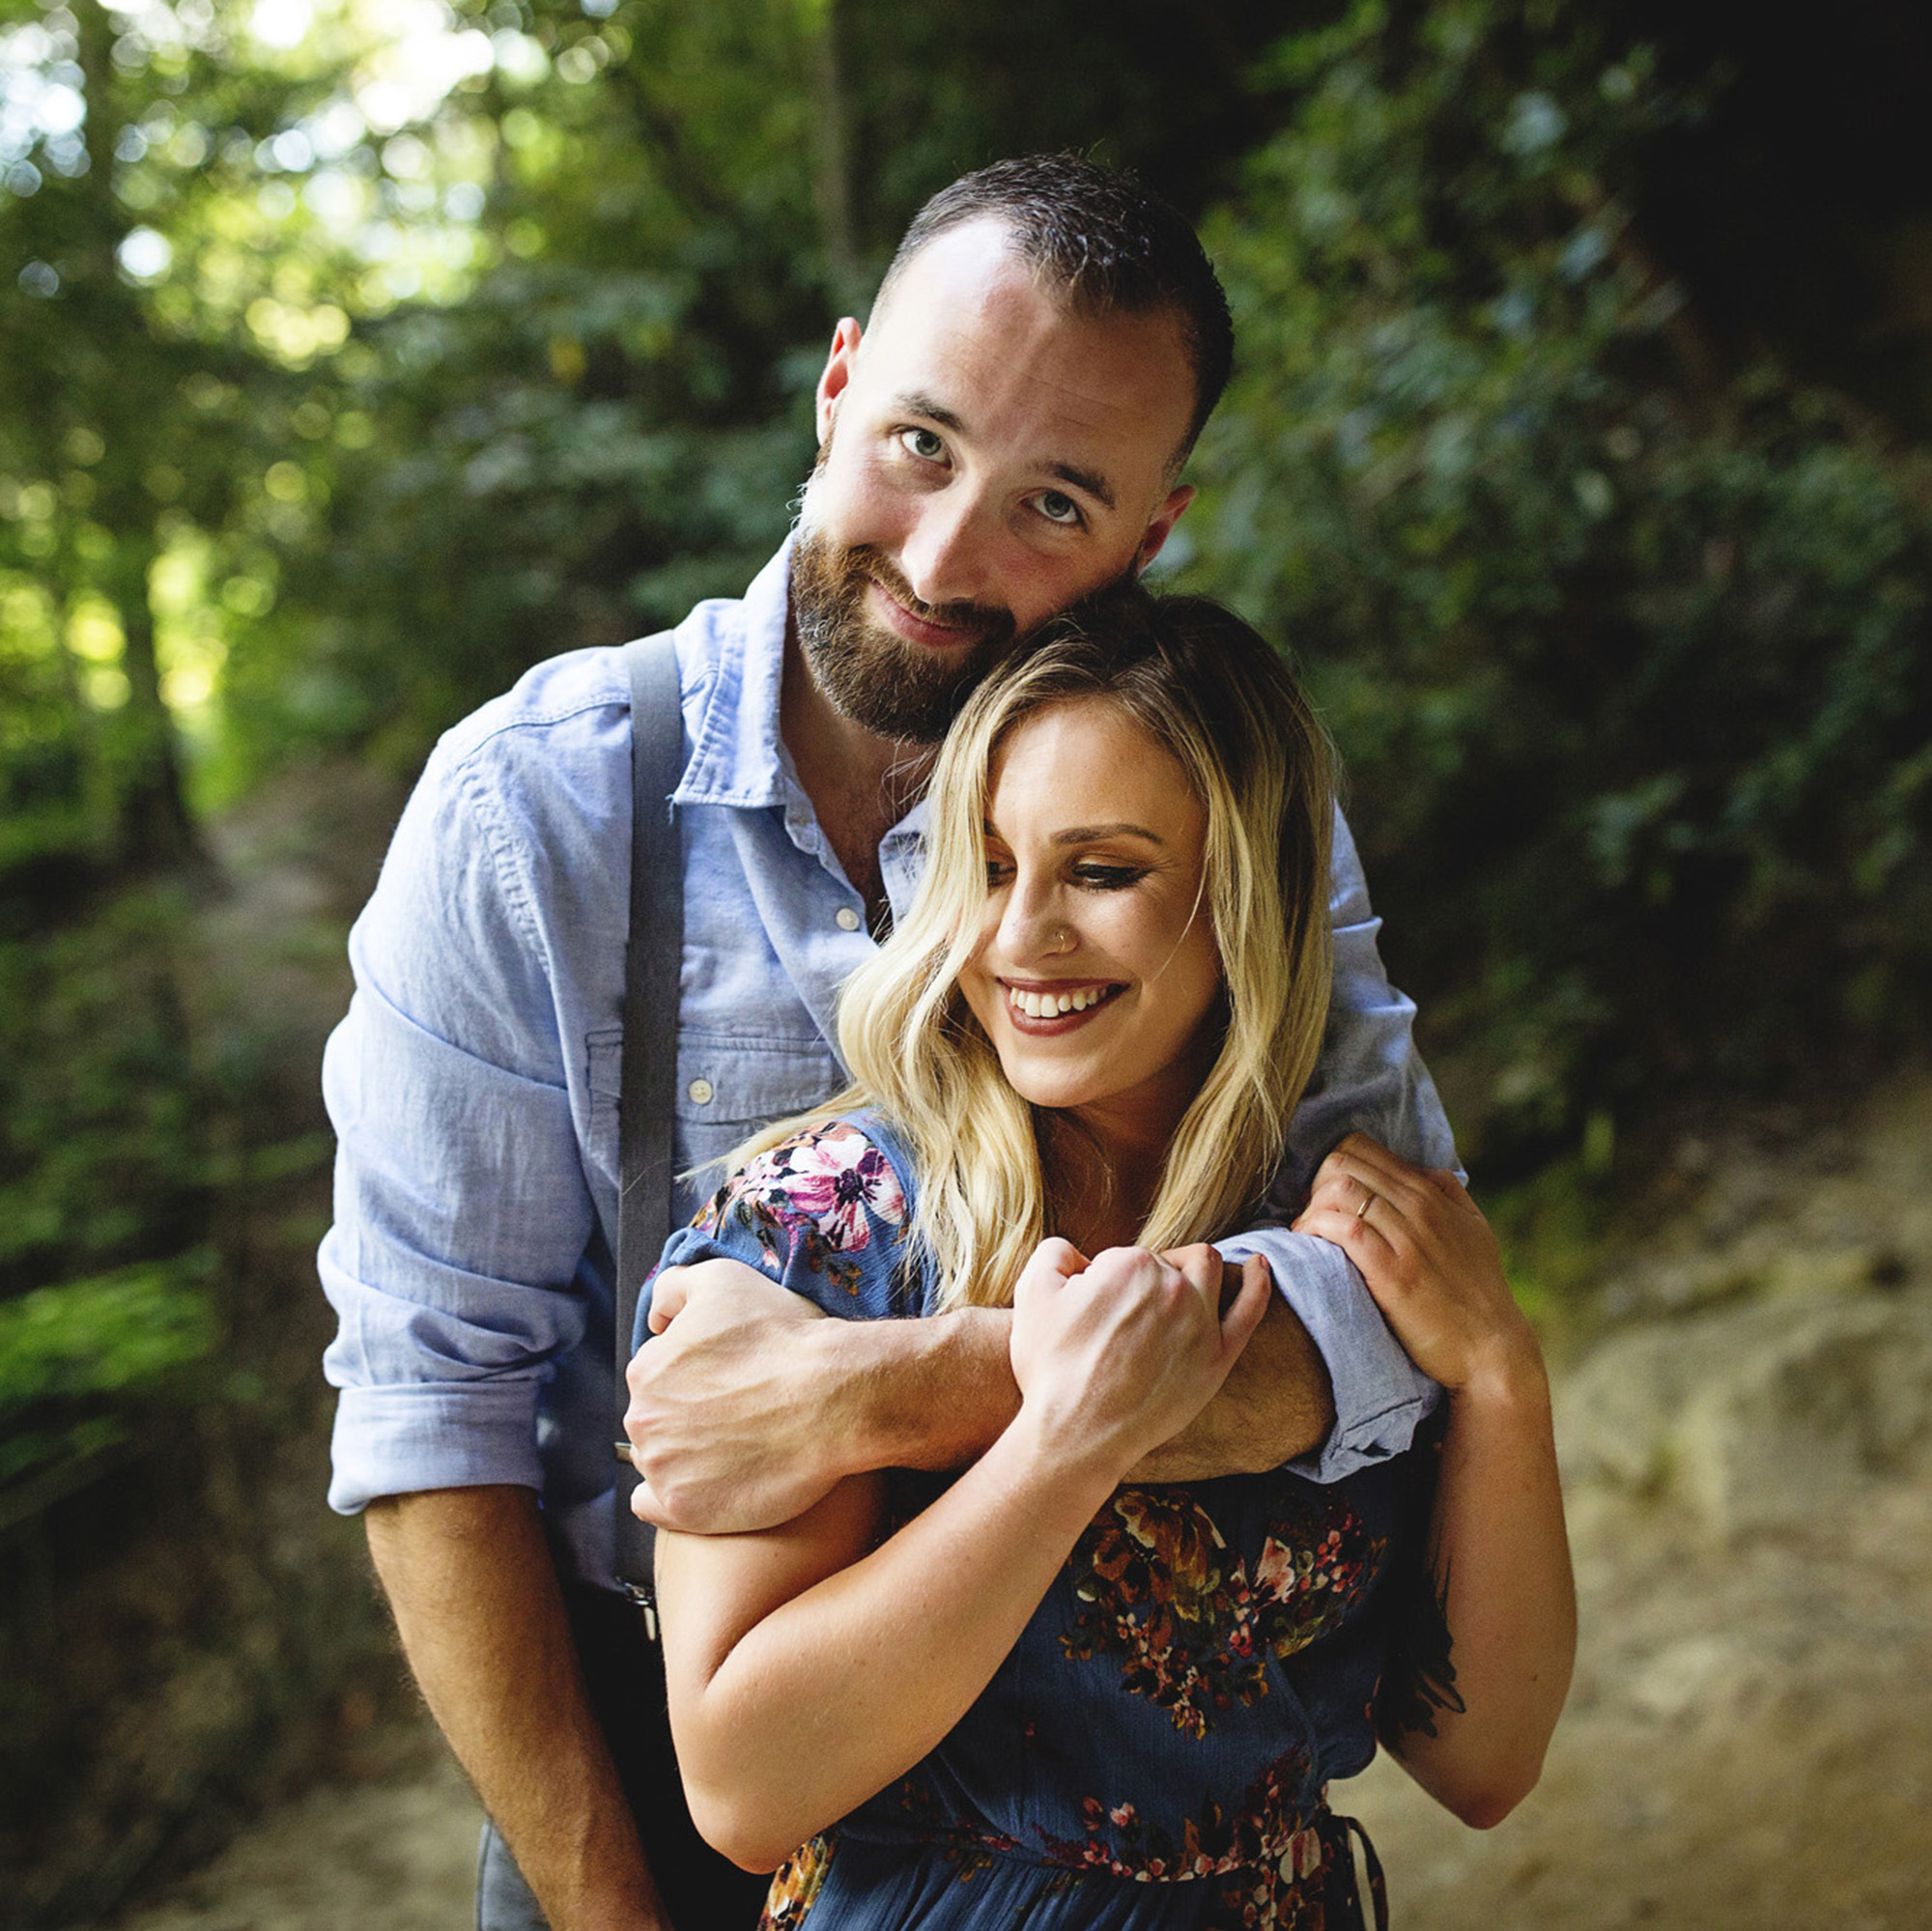 Seriously_Sabrina_Photography_Red_River_Gorge_Engagement_Session_Monika_Steven_12.jpg